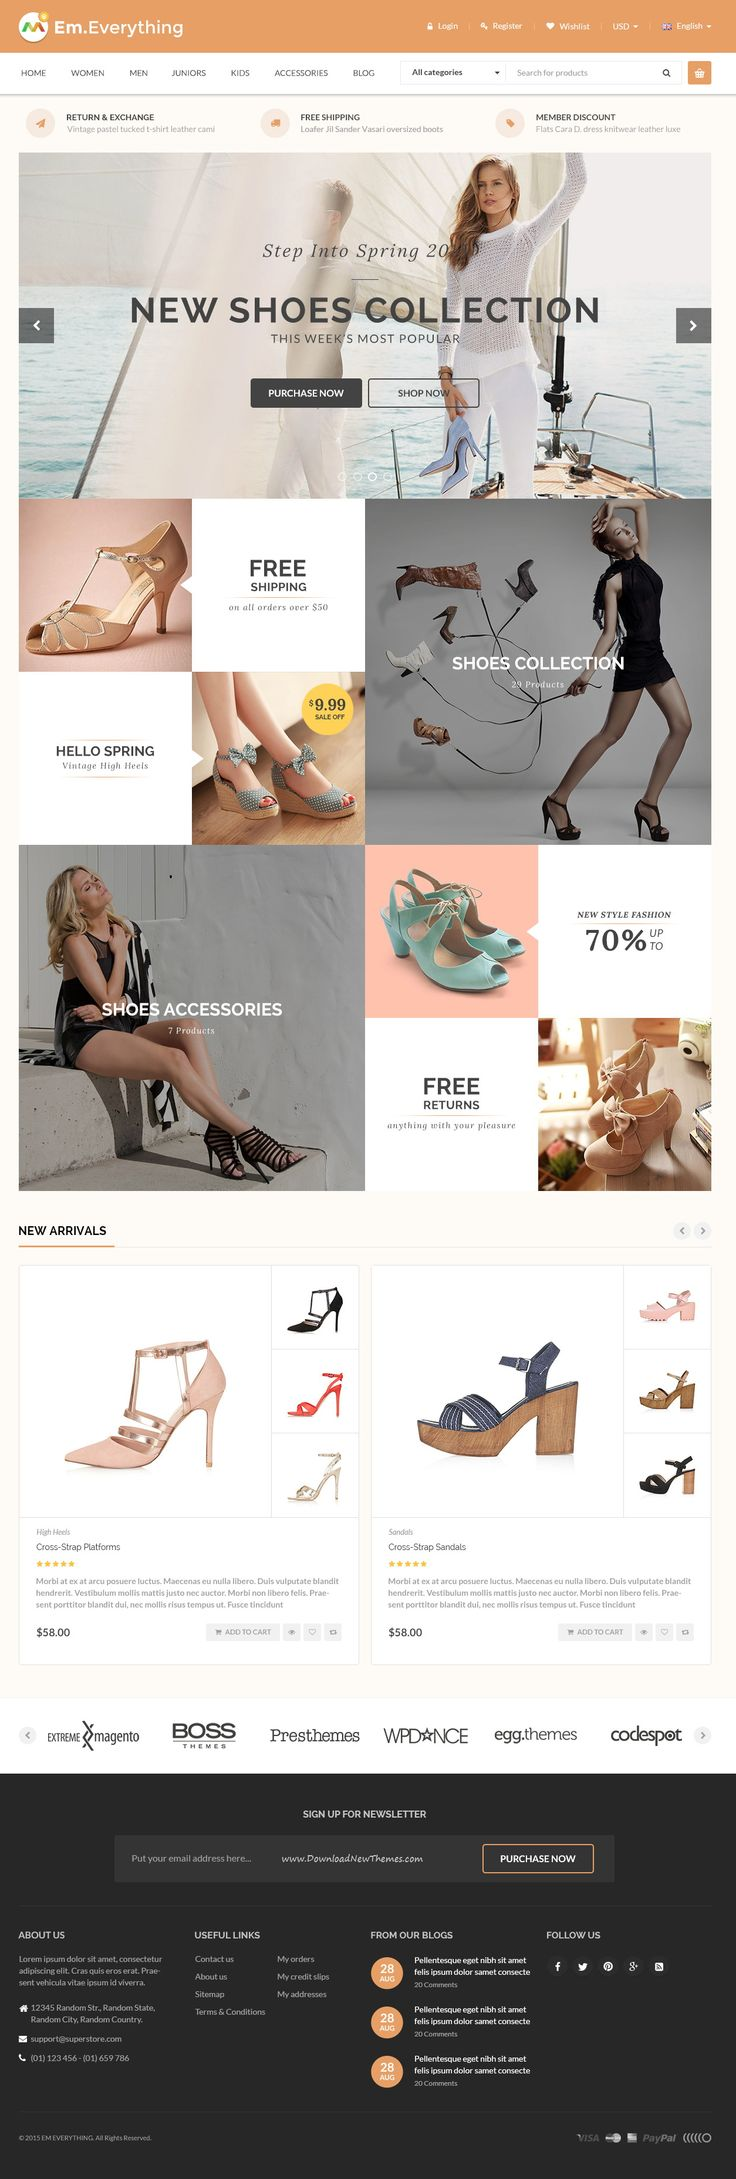 Everthing is premium Magento theme with advanced admin module. Its extremely customizable, easy to use and fully responsive. #Fashion #Clothes #Gifts #eCommerce #webdesign